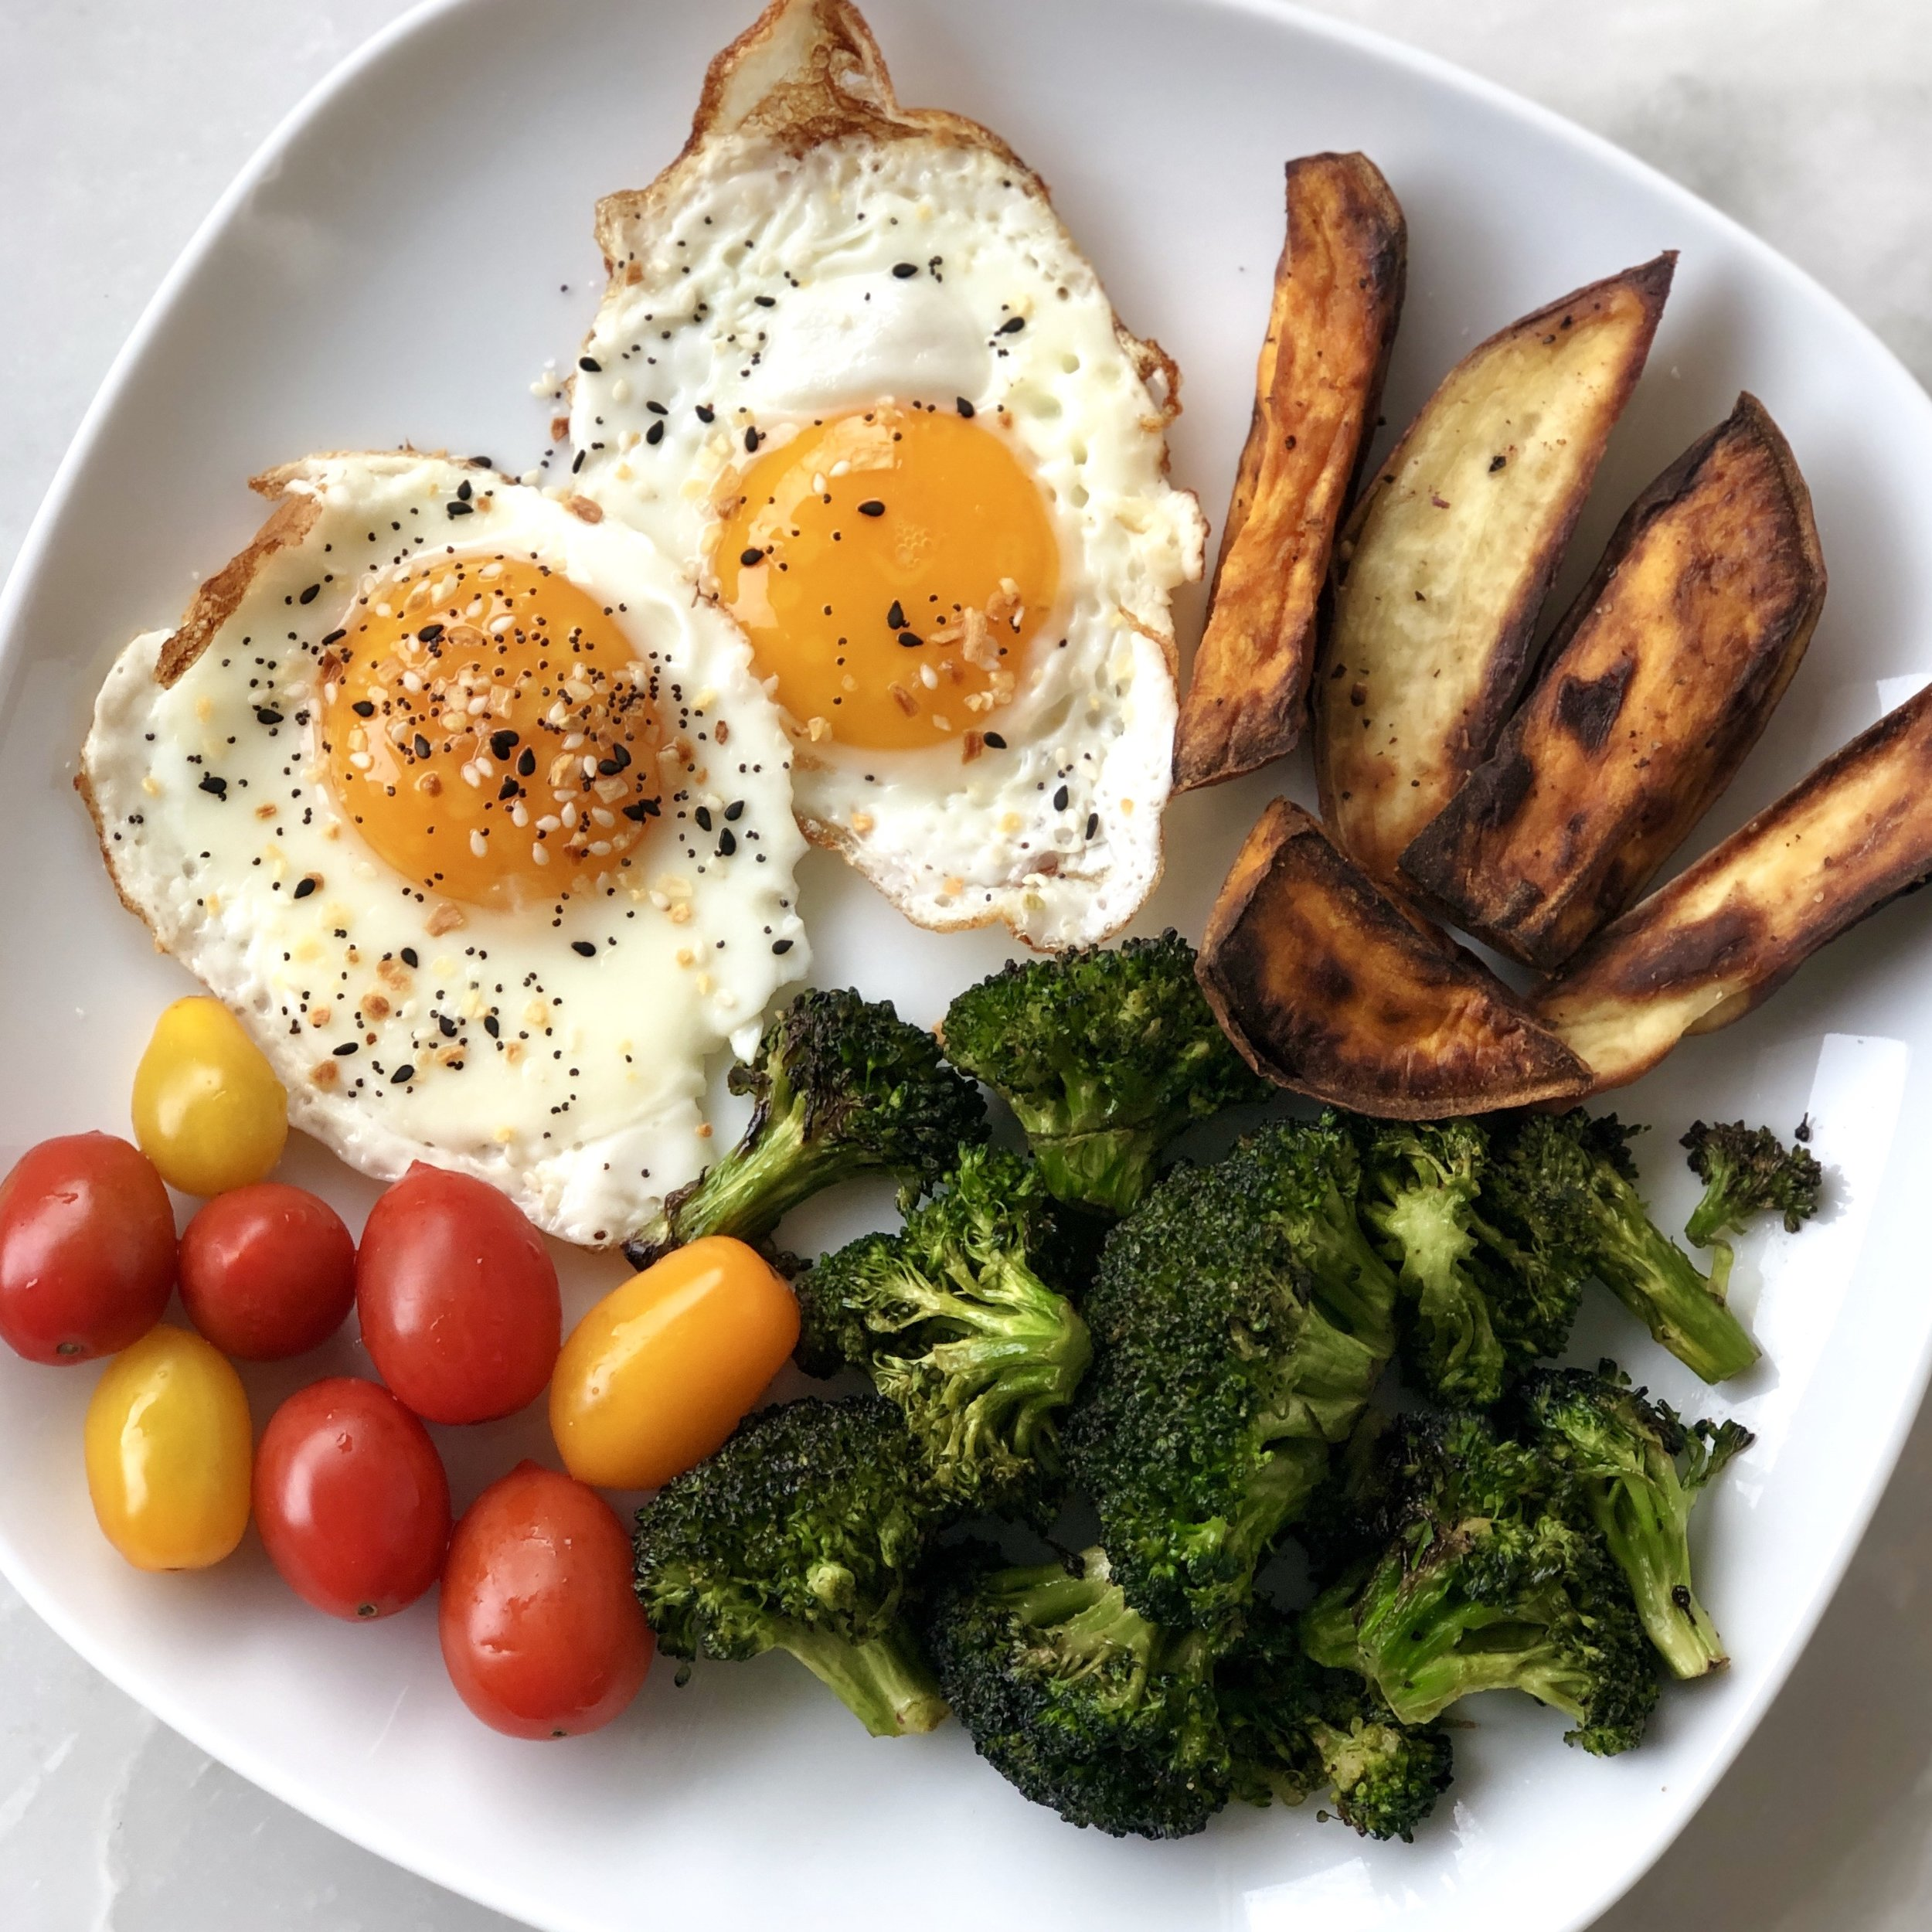 Another plate loaded up with the pregnancy goods! Eggs (hi choline, protein, DHA, vitamin D, vitamin K) and sweet potatoes for those unrefined carbohydrates and green veggies for folate. So you don't need to eat out of the ordinary foods, just be mindful of what you're taking in!